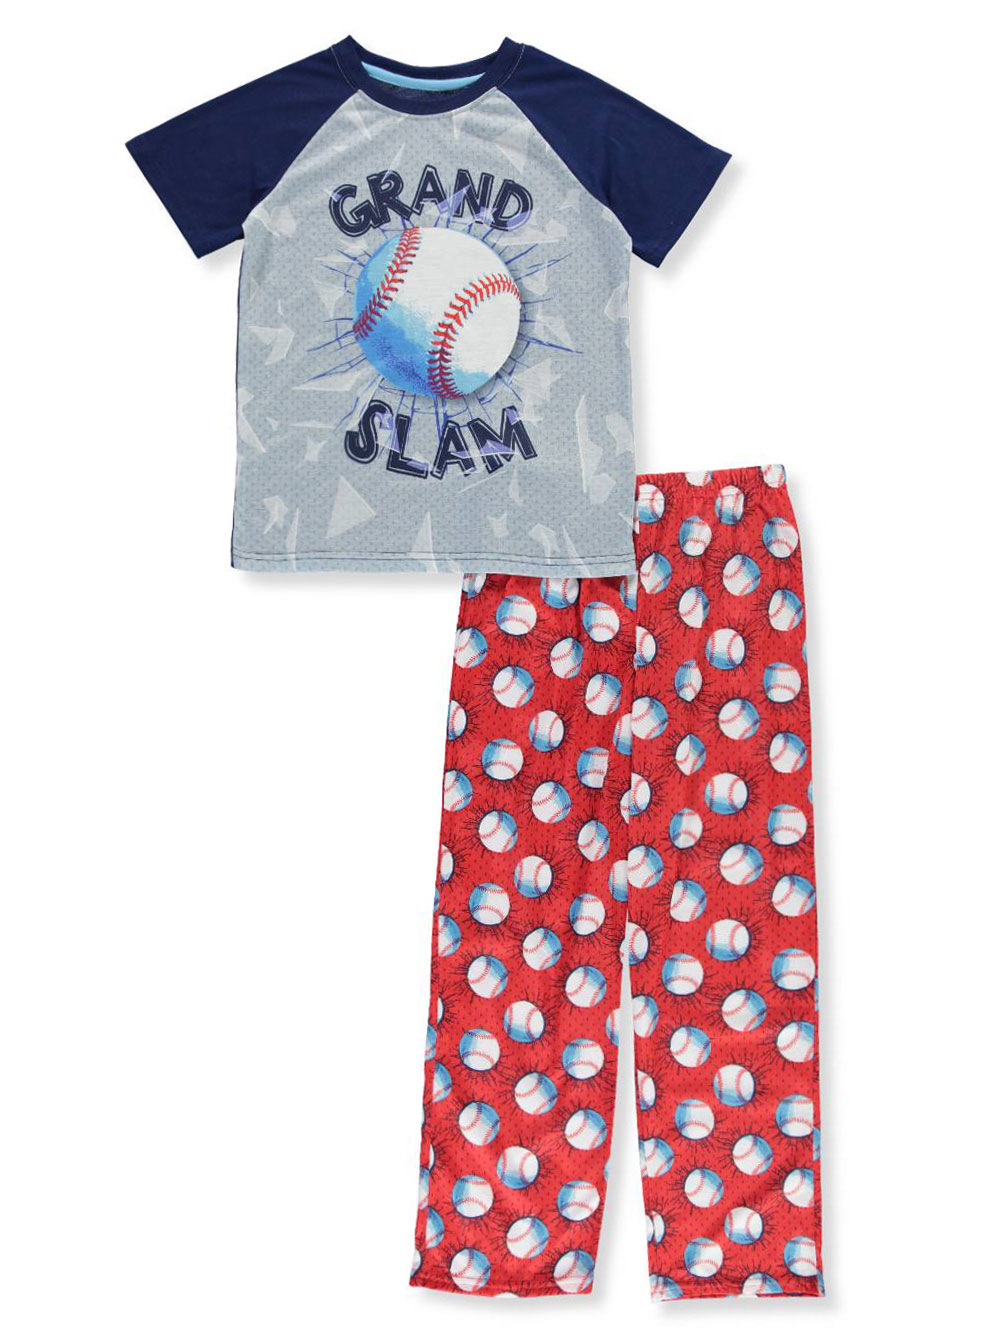 Size 10 Sleepwear for Boys